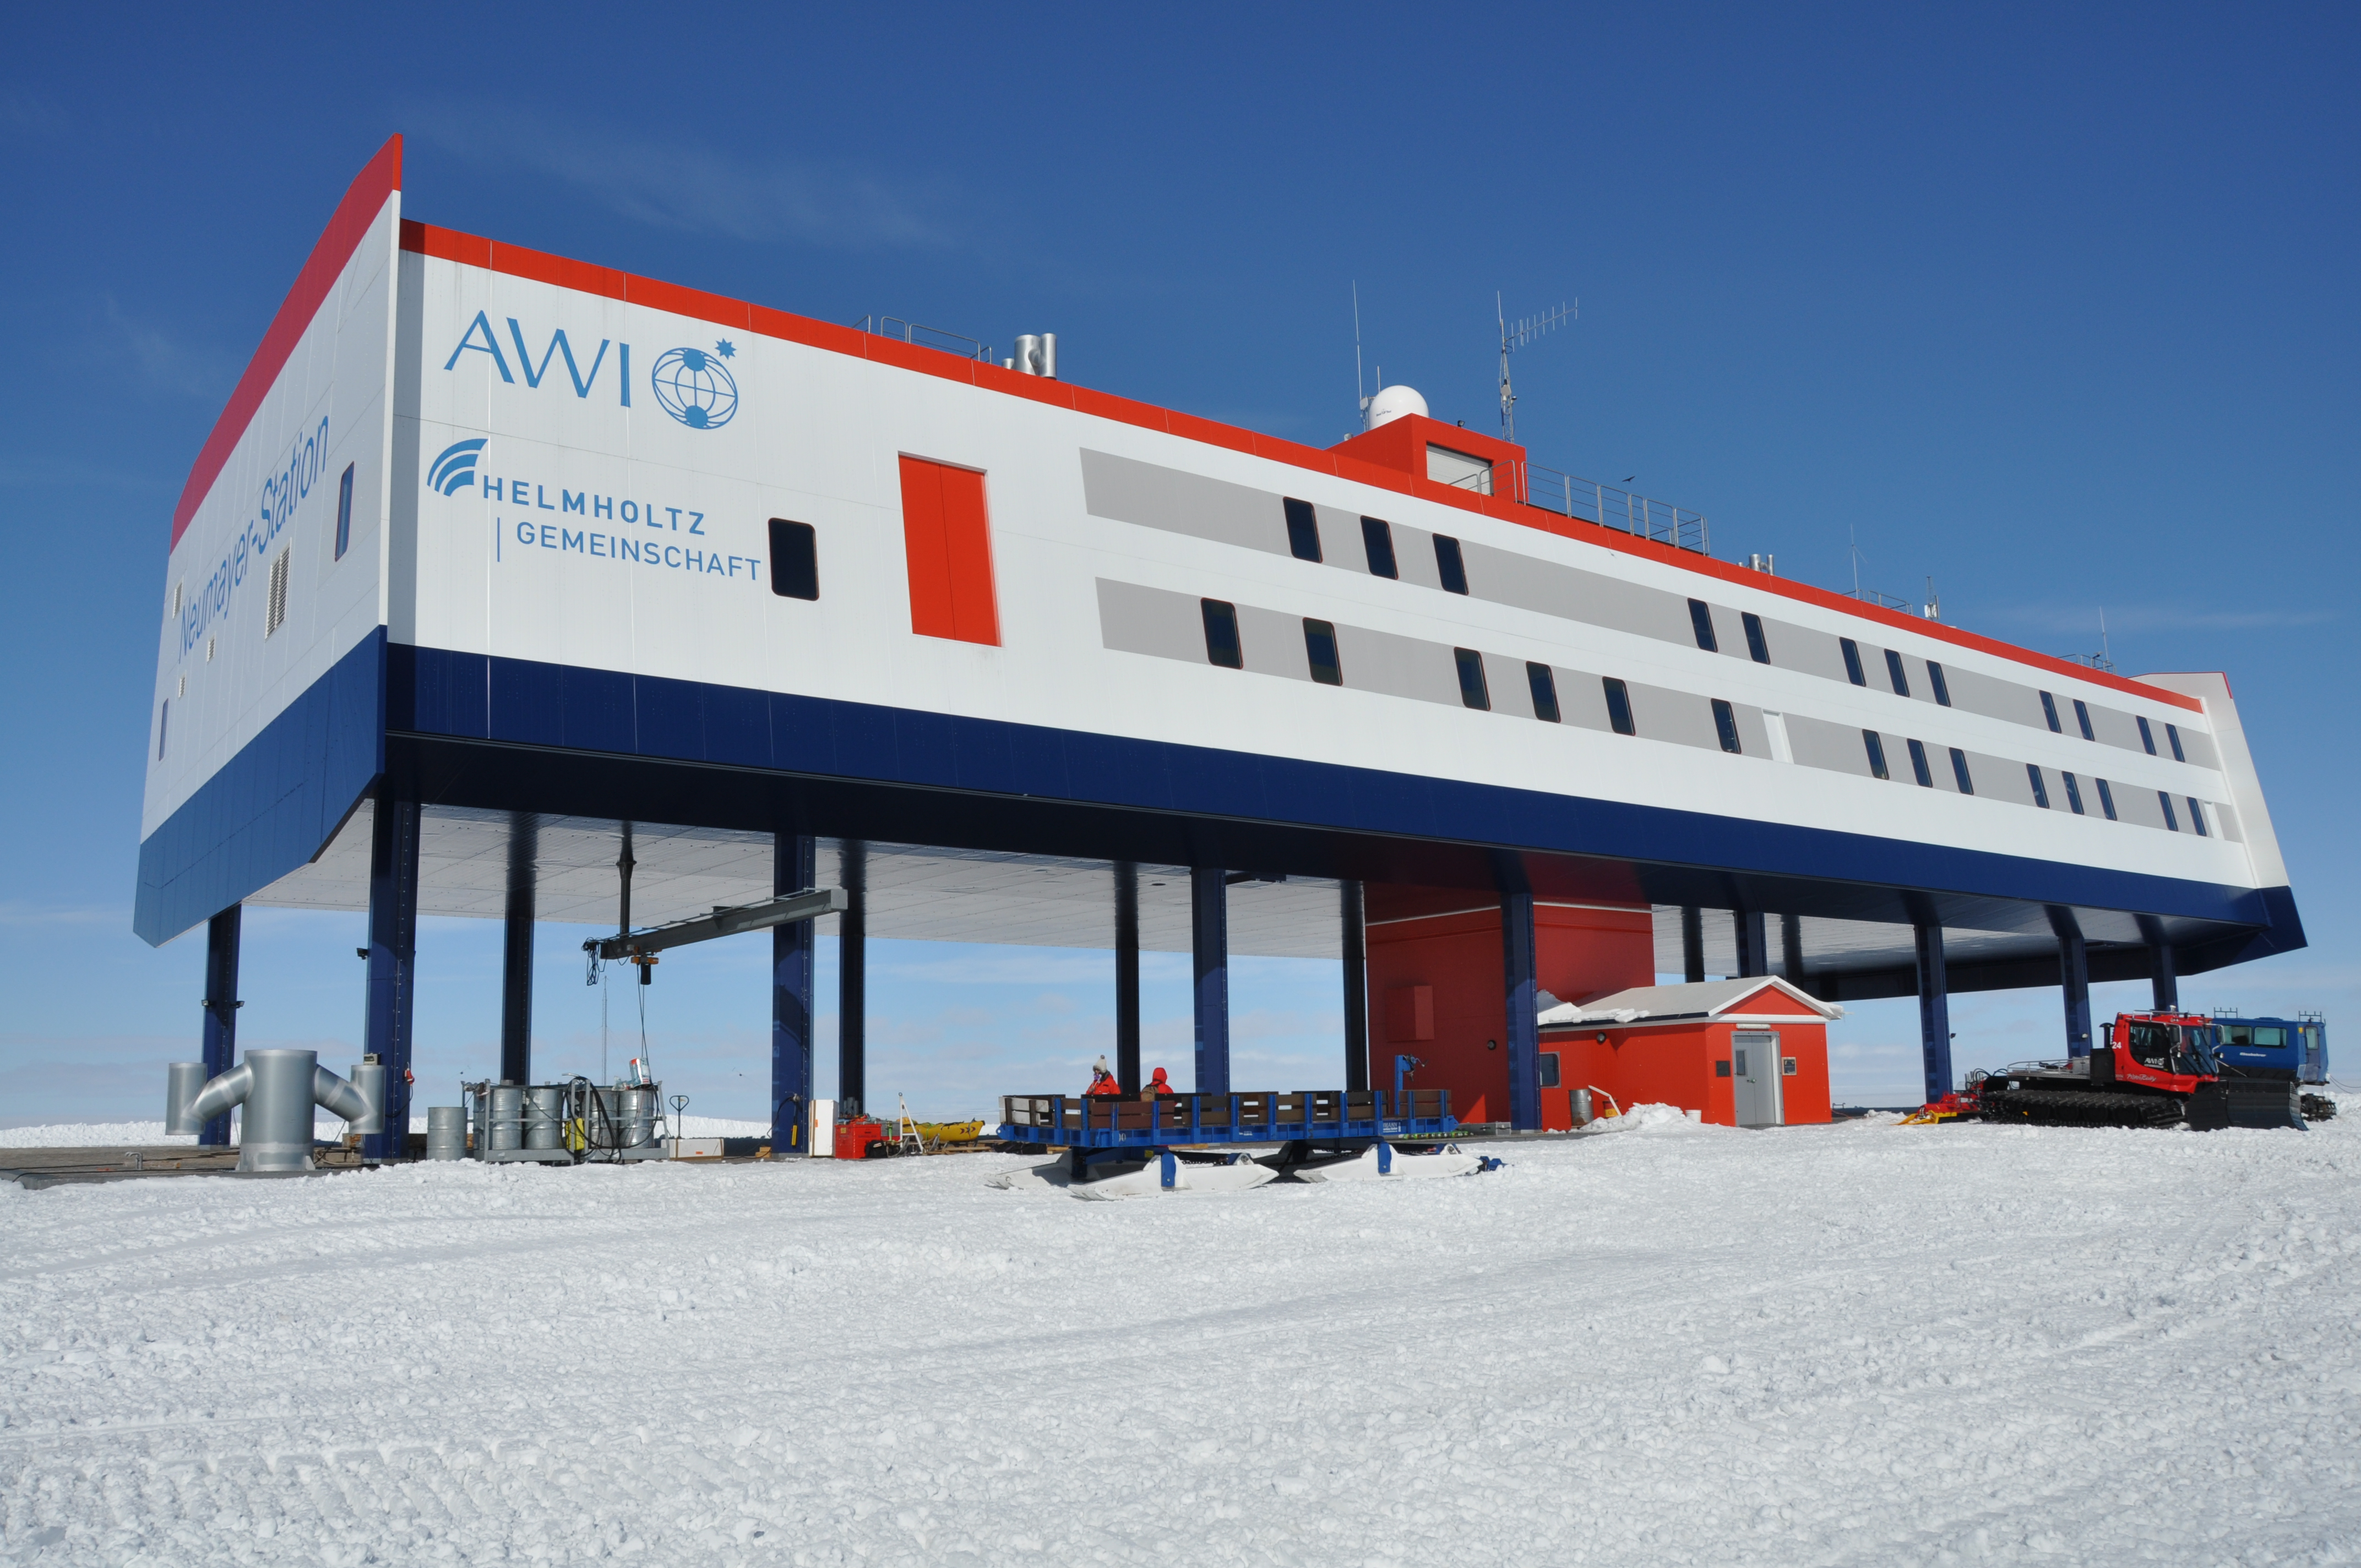 Research and logistics in the perpetual ice | Umweltbundesamt